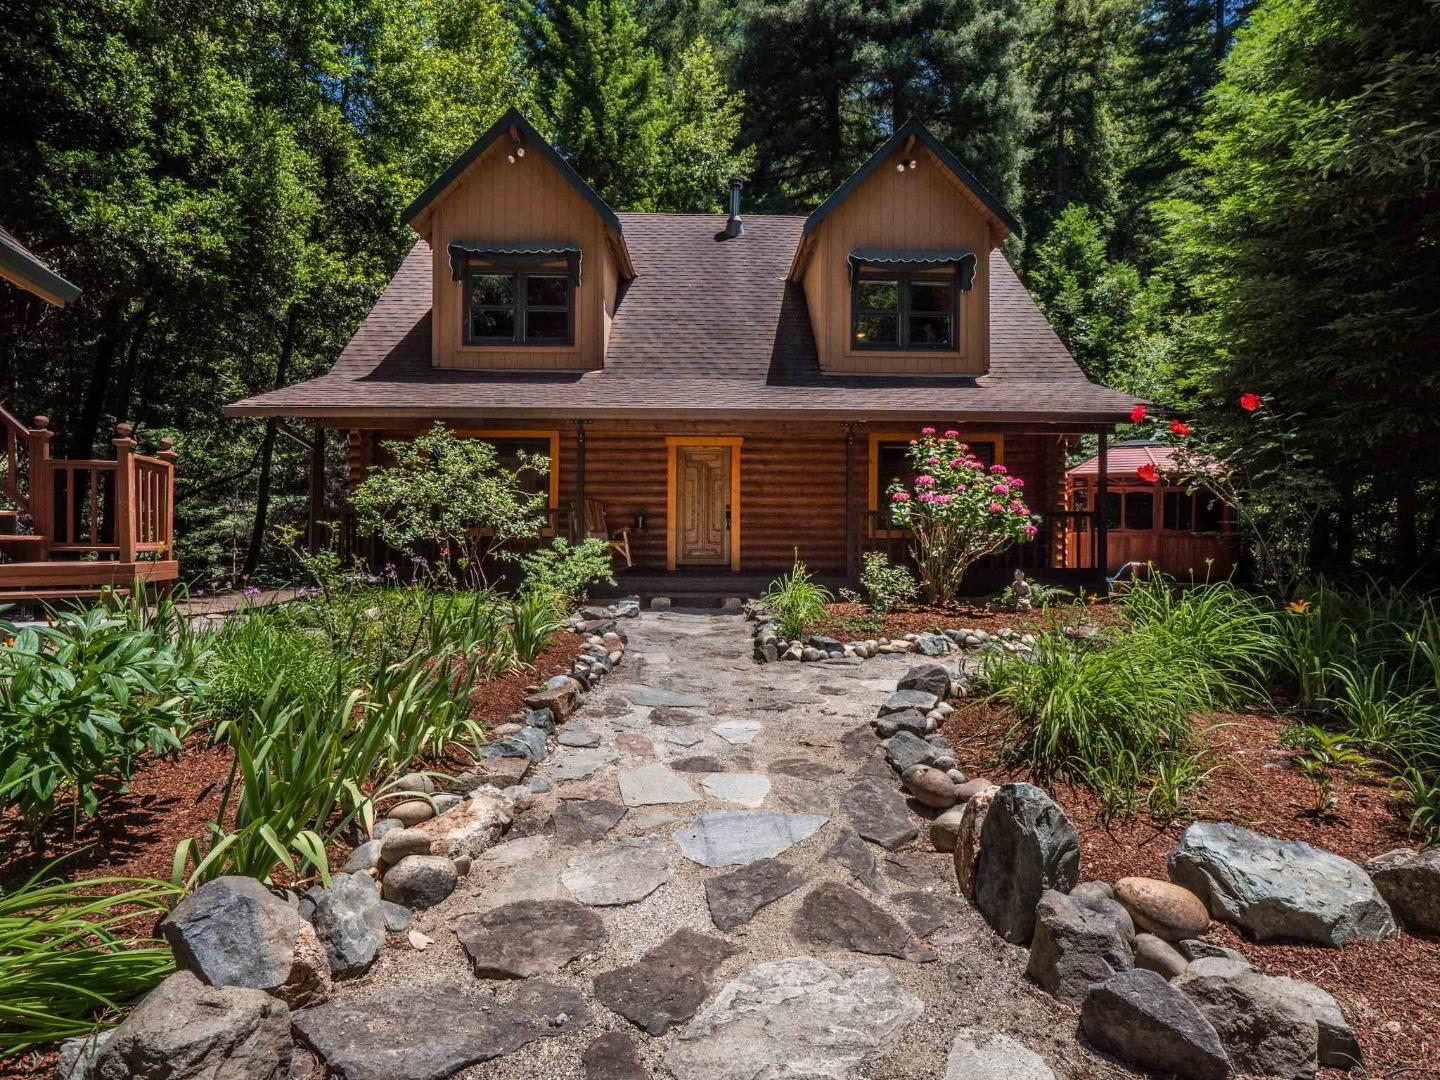 Inspired by nature, this upscale Log Cabin home is energy efficient while it retains the rustic feeling of a mountain cabin.  It is like being on vacation all year long.  The lot is 1+acre, there is a creek and  some beautiful Redwoods and you can spot an occasional deer or some wild turkeys passing by. There are great outdoor spaces; a huge back deck, covered front porch and a gazebo with spa. The kitchen has top-of-line appliances, solid oak cabinets and granite counters. There are custom wood frame dual pane windows throughout. Beautiful wide plank hardwood floors downstairs and plush New Zealand wool carpets  upstairs bedrooms. Master bedroom is on the first level and has a tiled bath with large stall shower. Upstairs bedrooms are huge with large walk-in closets. The quaint upstairs bathroom has  bead board wainscoting, pull chain toilet and claw foot tub. Large single car detached garage has an upstairs bonus room and there is additional carport and lots of parking.